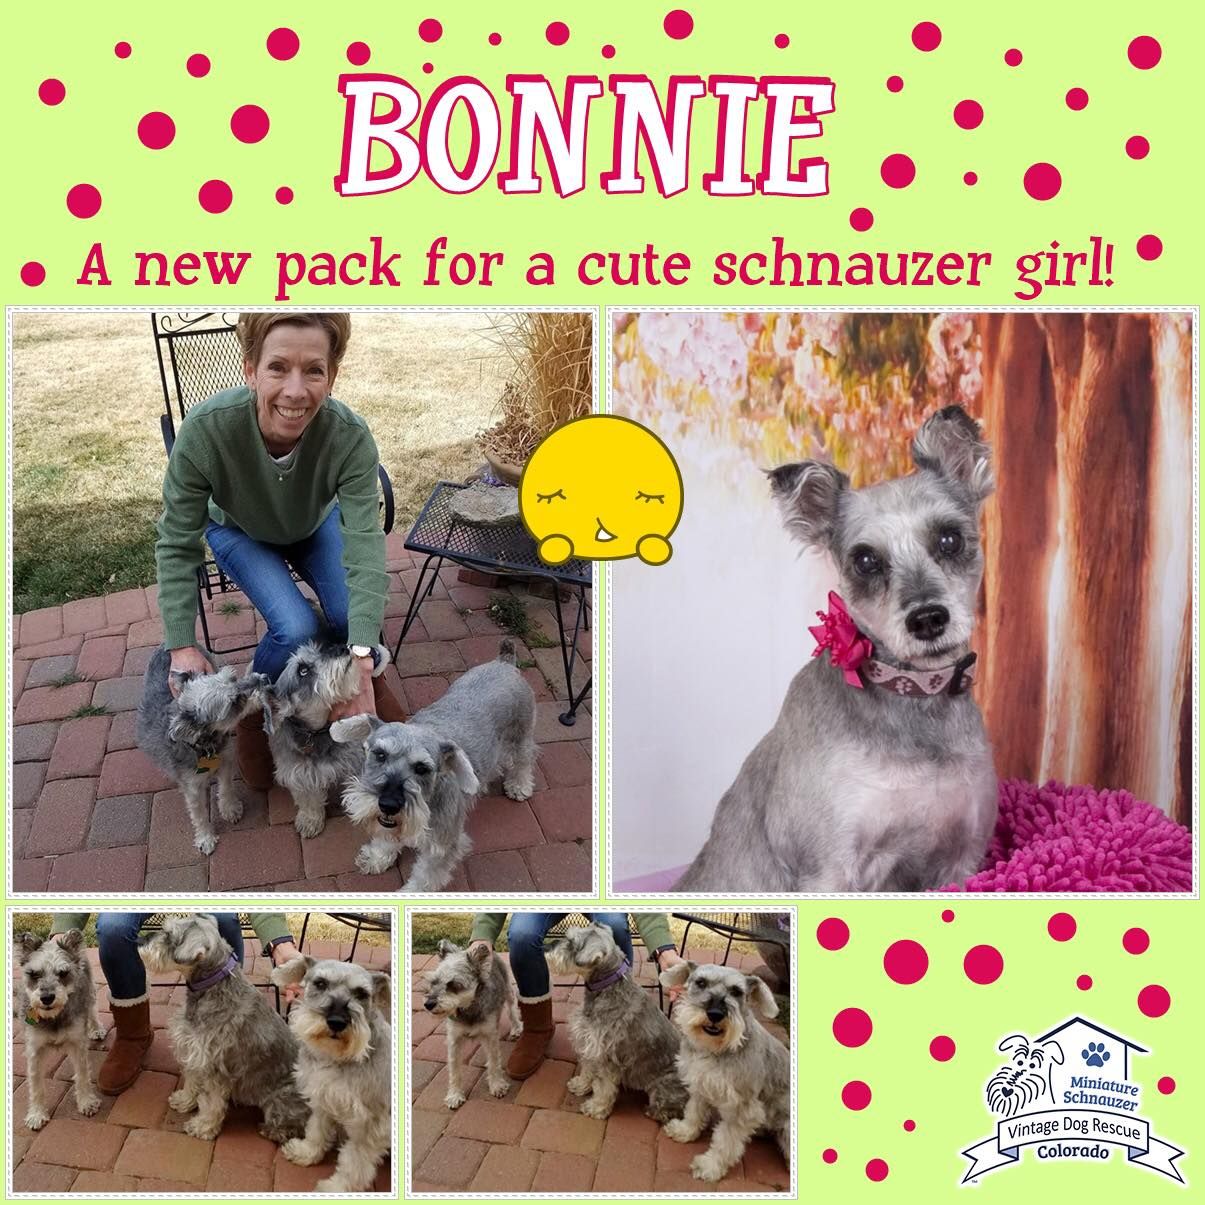 Bonnie was adopted!